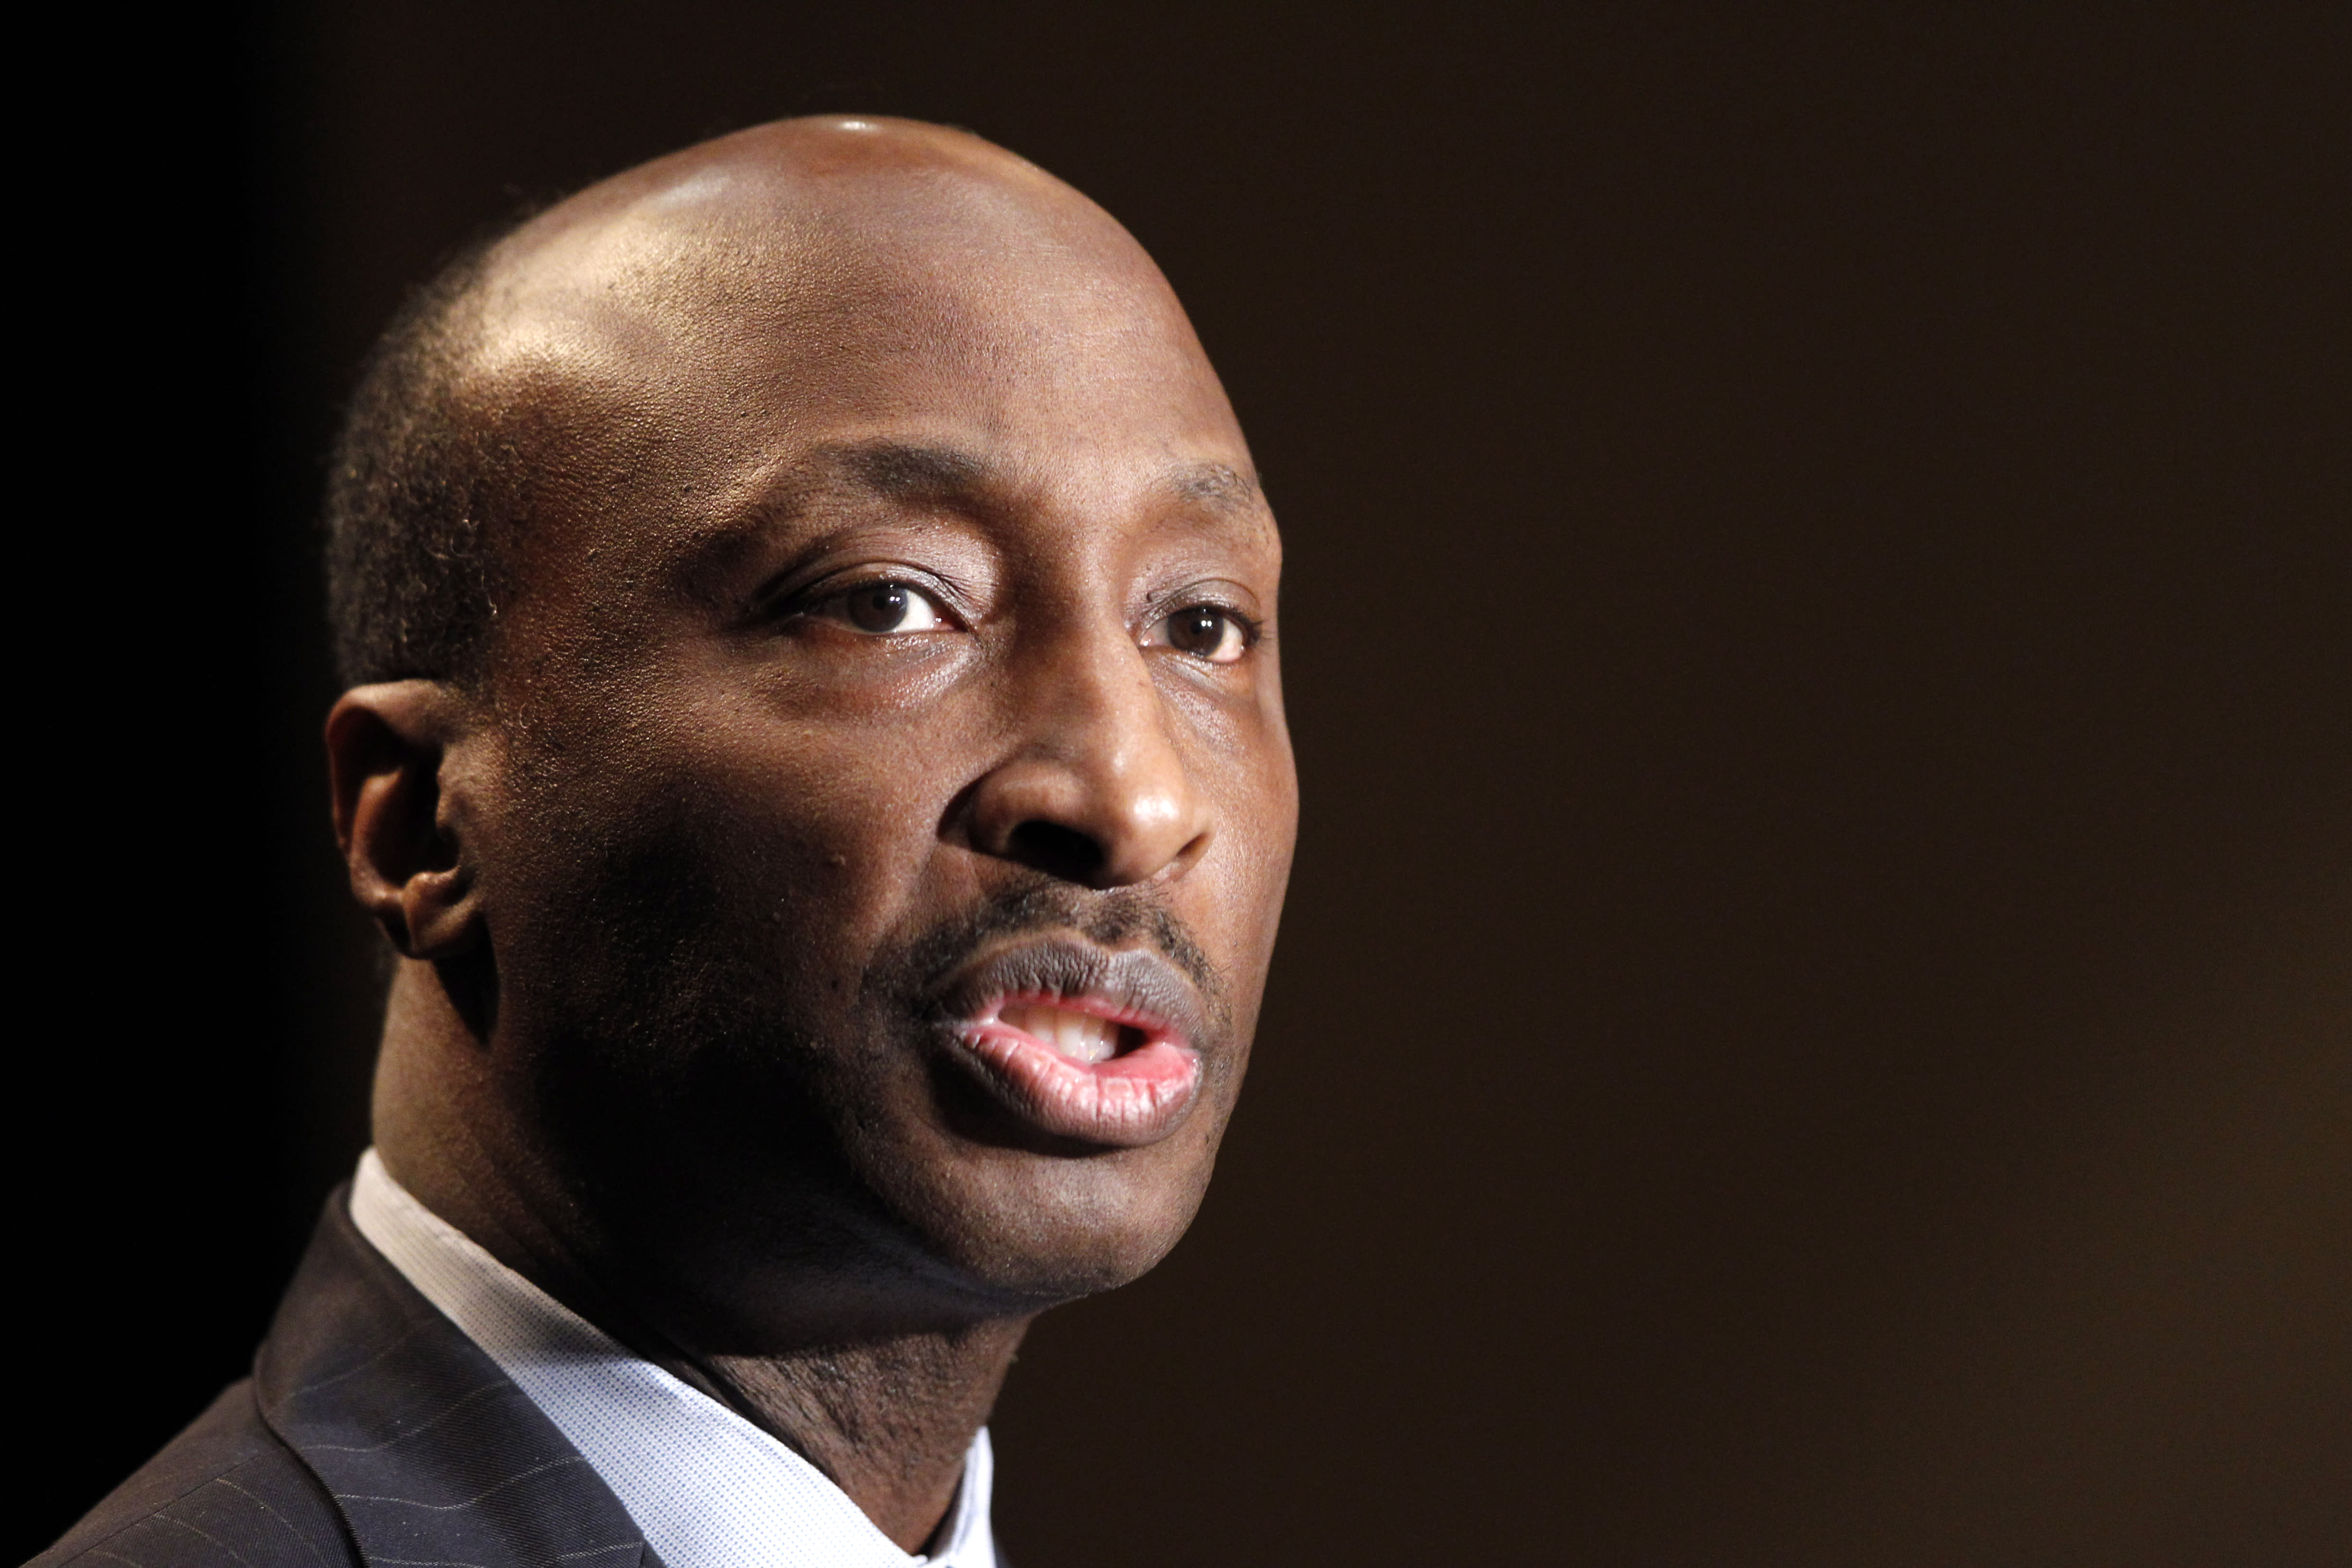 Merck CEO: Stepping down from Trump council was 'not a political issue'